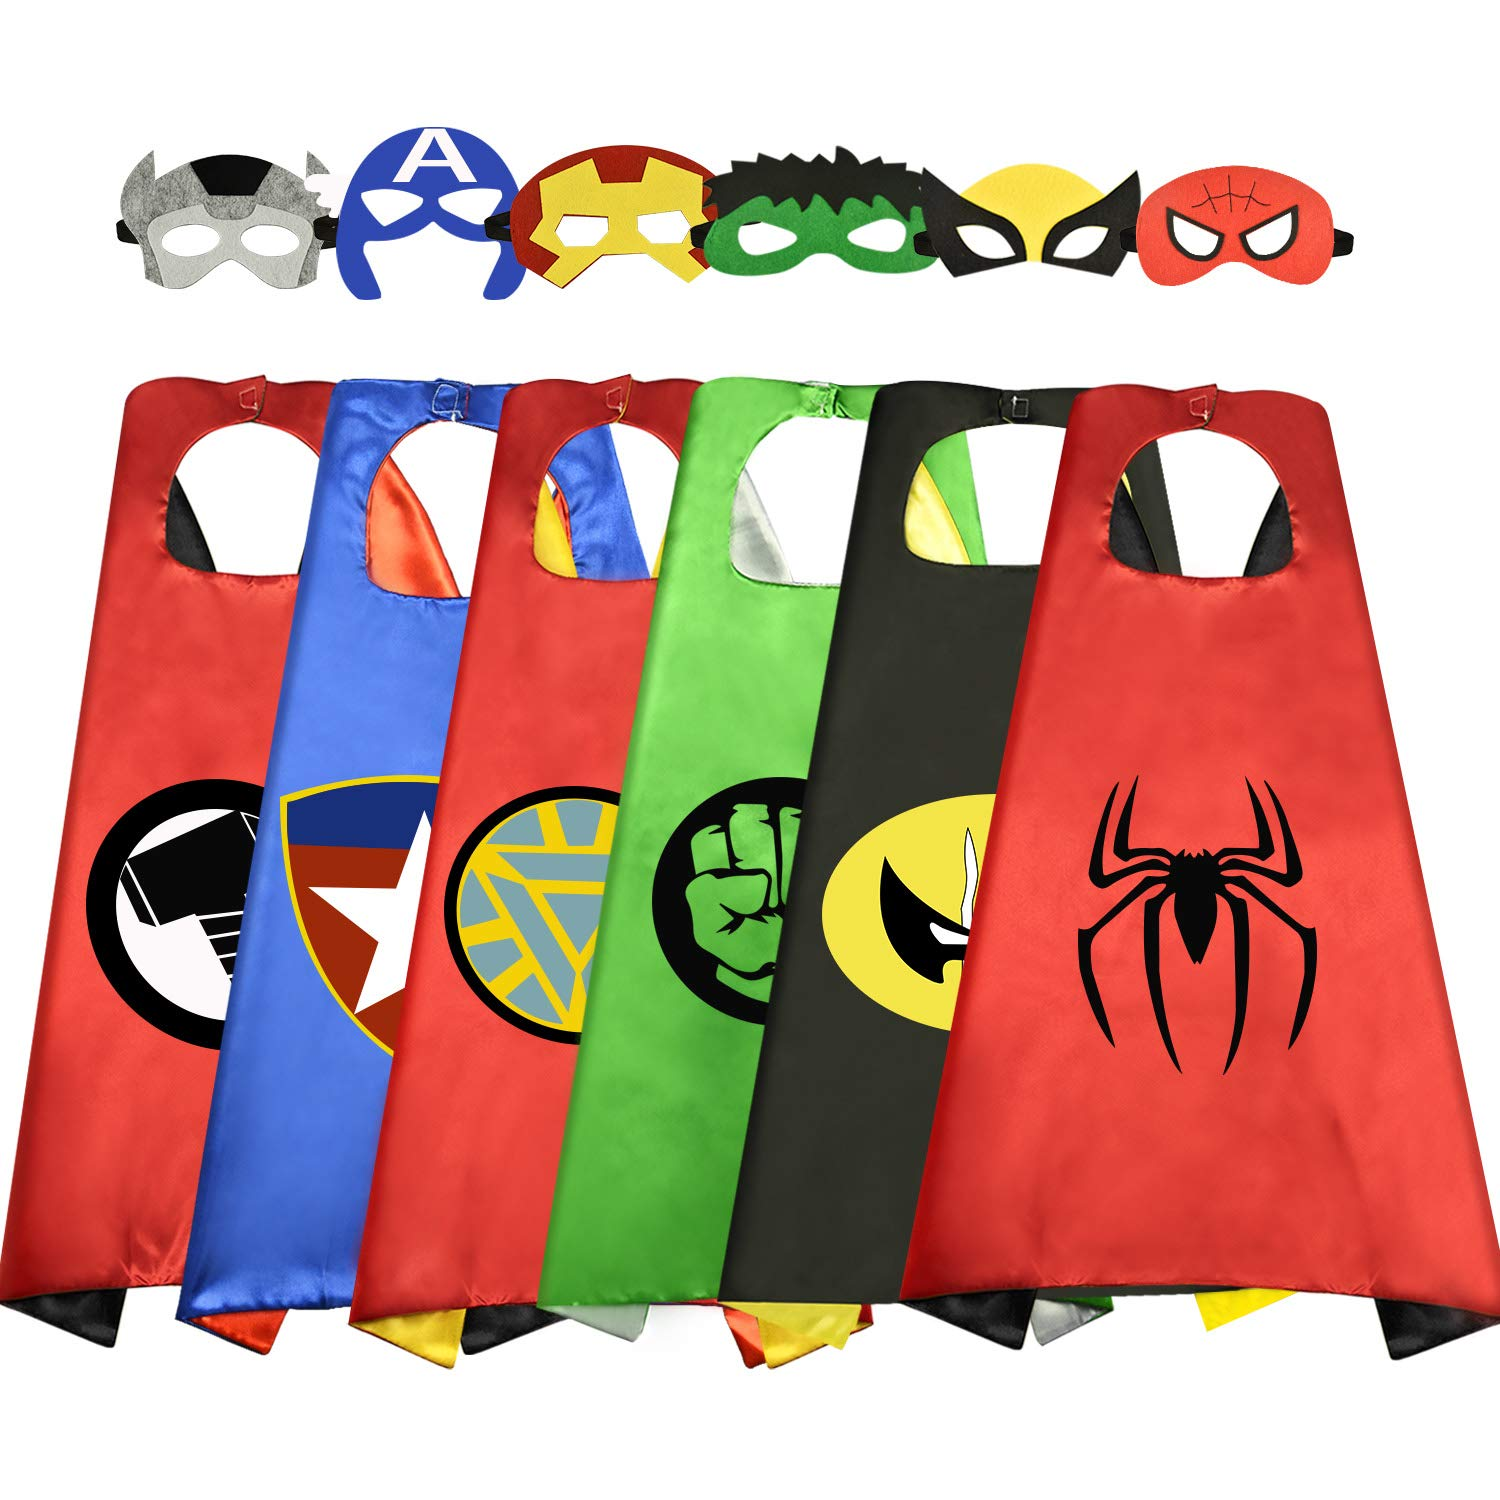 Roko 3-10 Year Old Boy Gifts, Superhero Costume for Boys Superhero Capes for Kids Boys Toys for 3-10 Year Old Boys Girls Cartoon Dress up Costumes Party Supplies Stocking Fillers 6 Pack RKUSPF06 by Roko